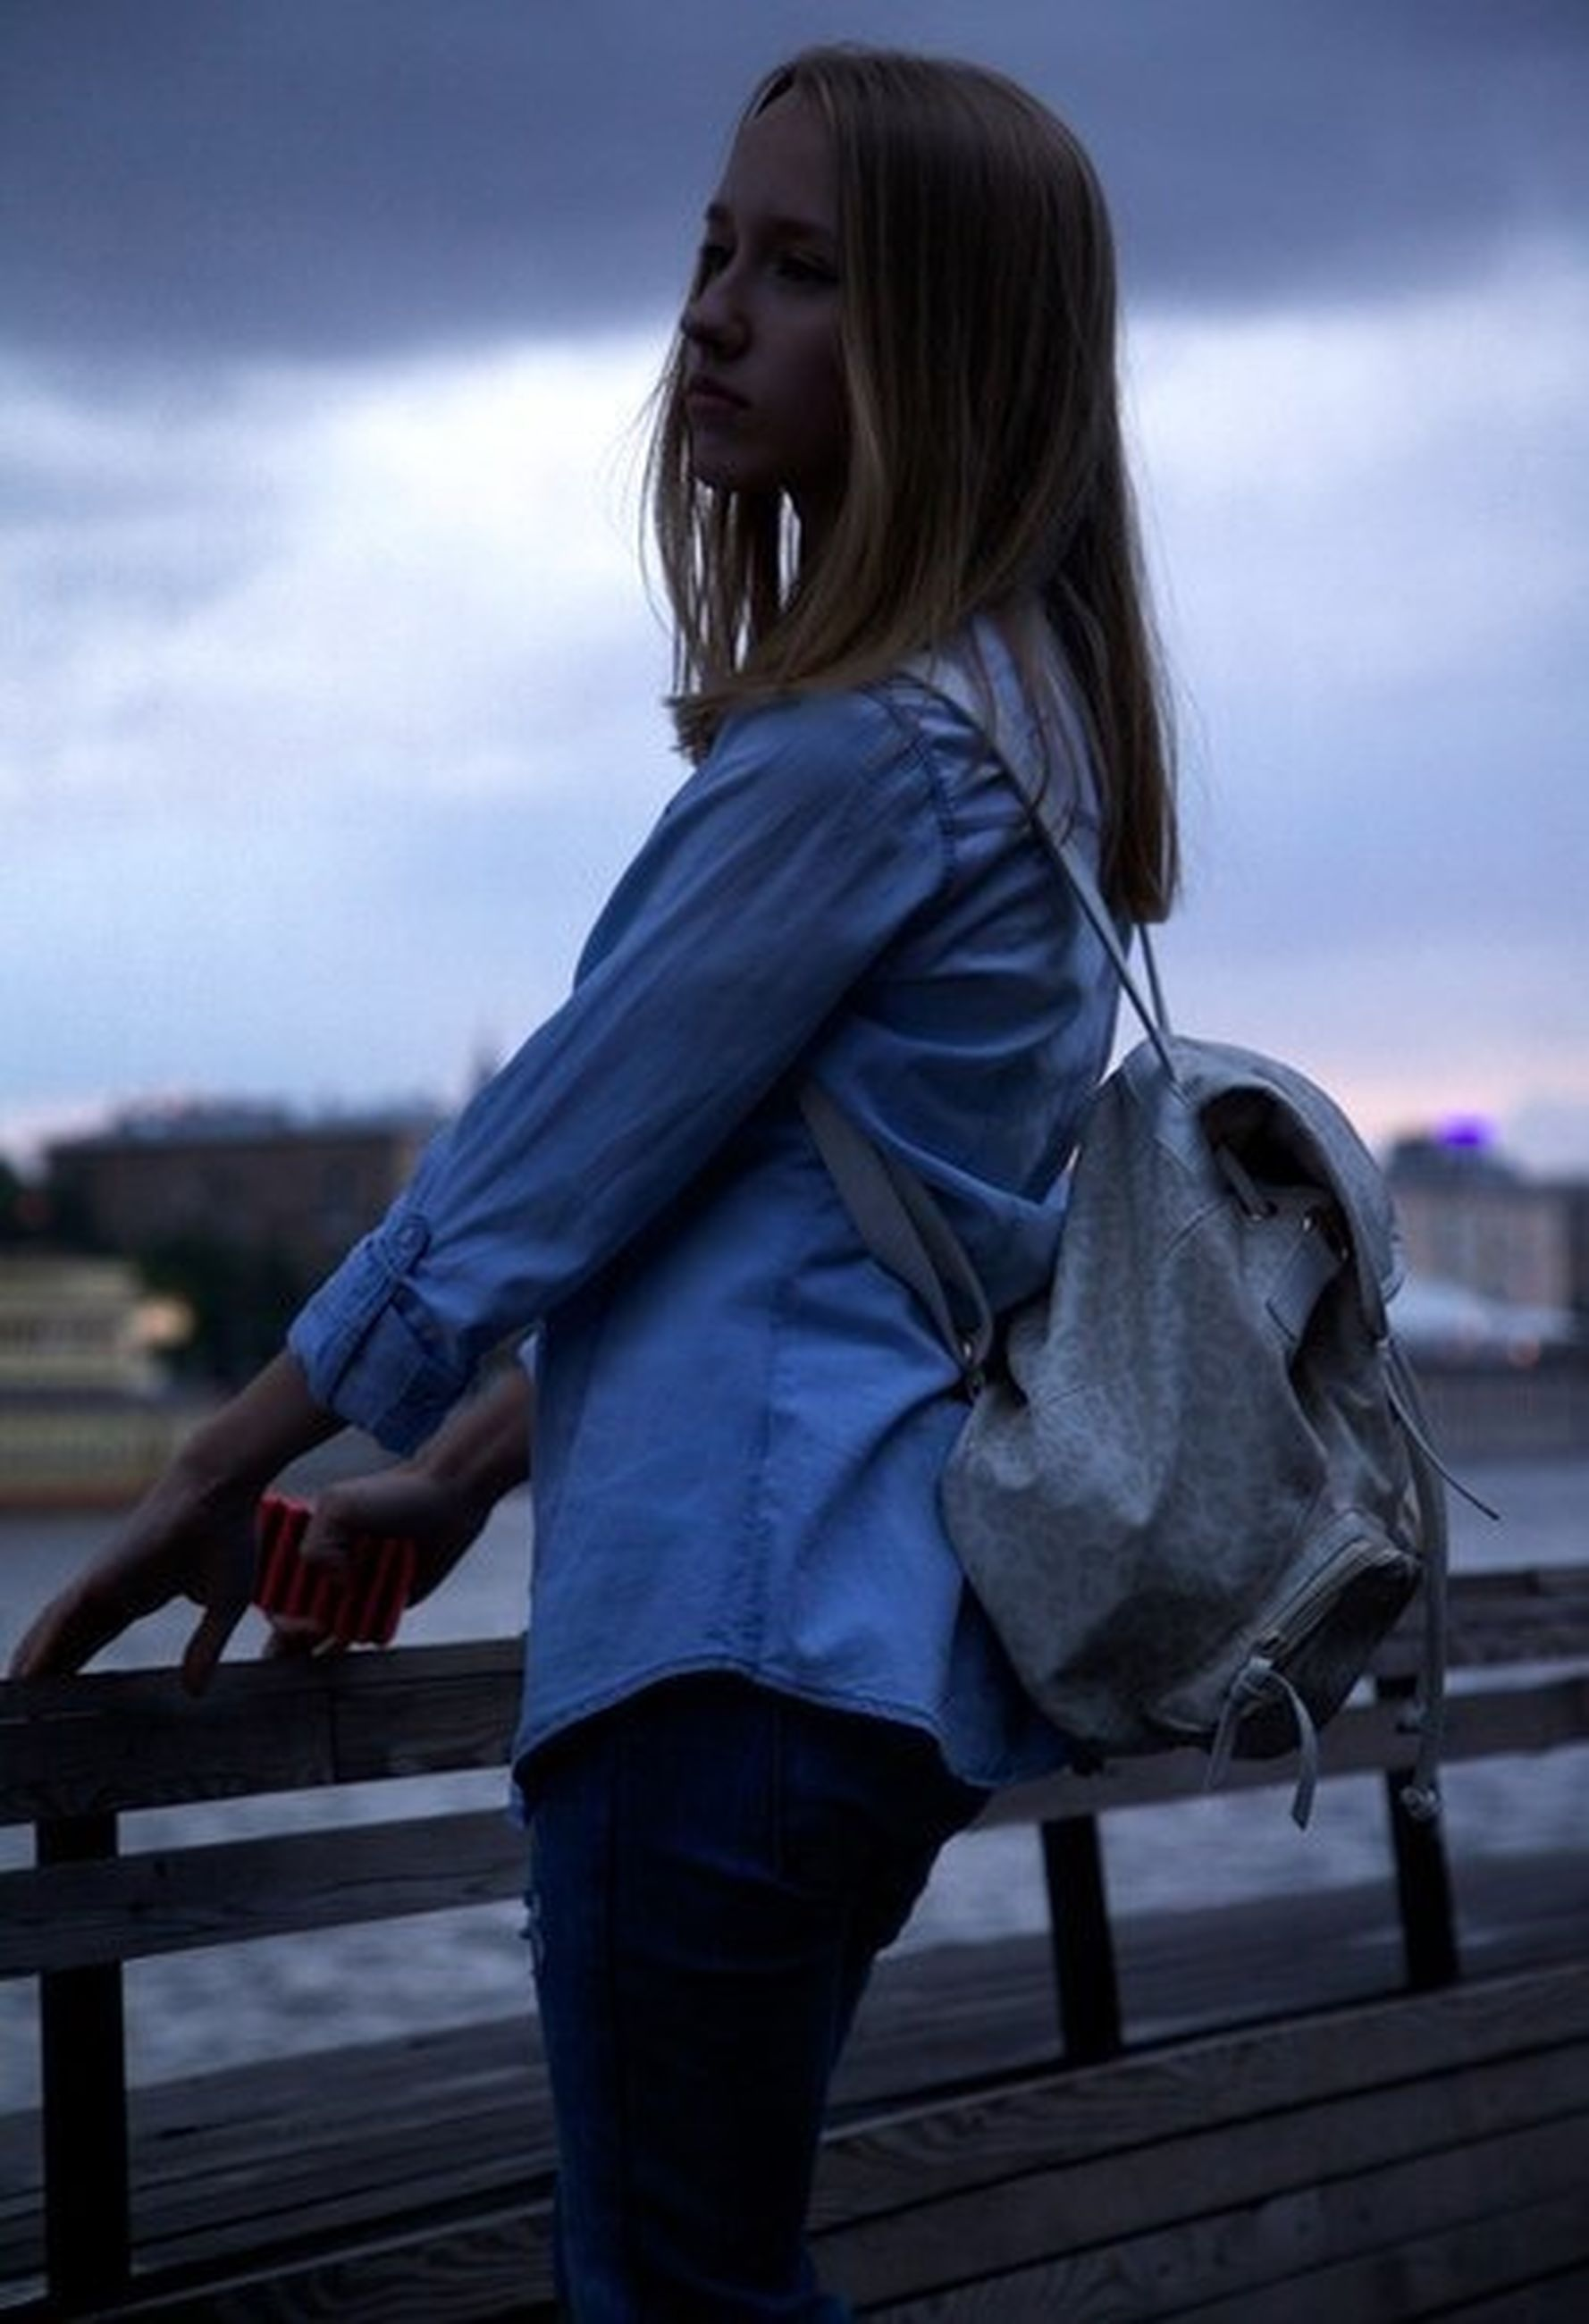 focus on foreground, railing, lifestyles, sky, casual clothing, standing, leisure activity, rear view, side view, three quarter length, looking away, outdoors, young adult, day, cloud - sky, full length, cloud, waist up